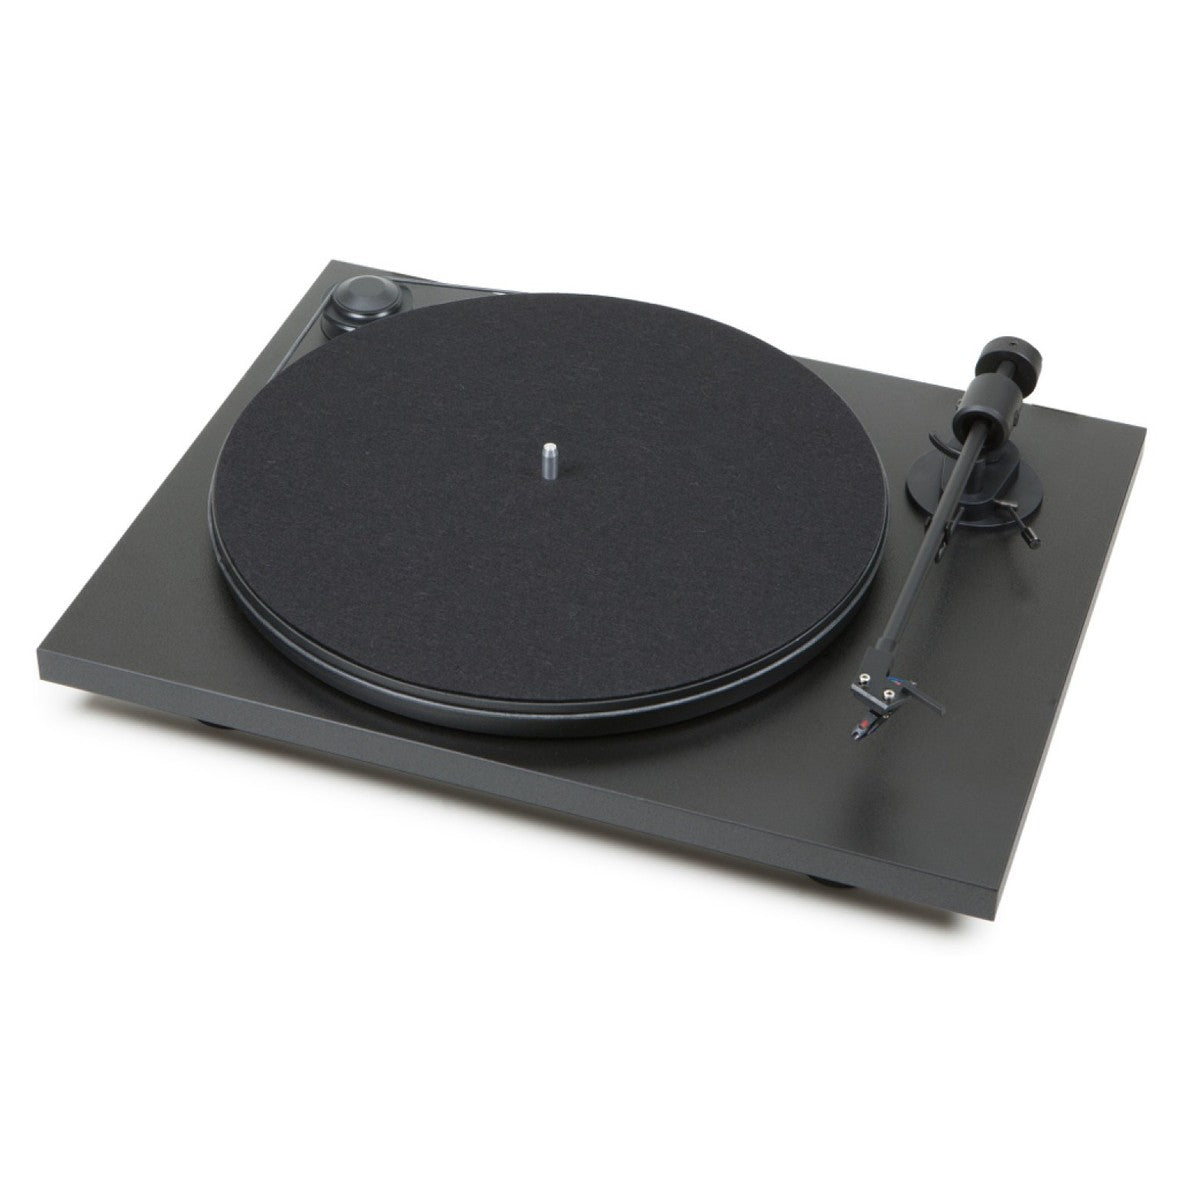 Pro-Ject: Primary Turntable (OM5e) - Black